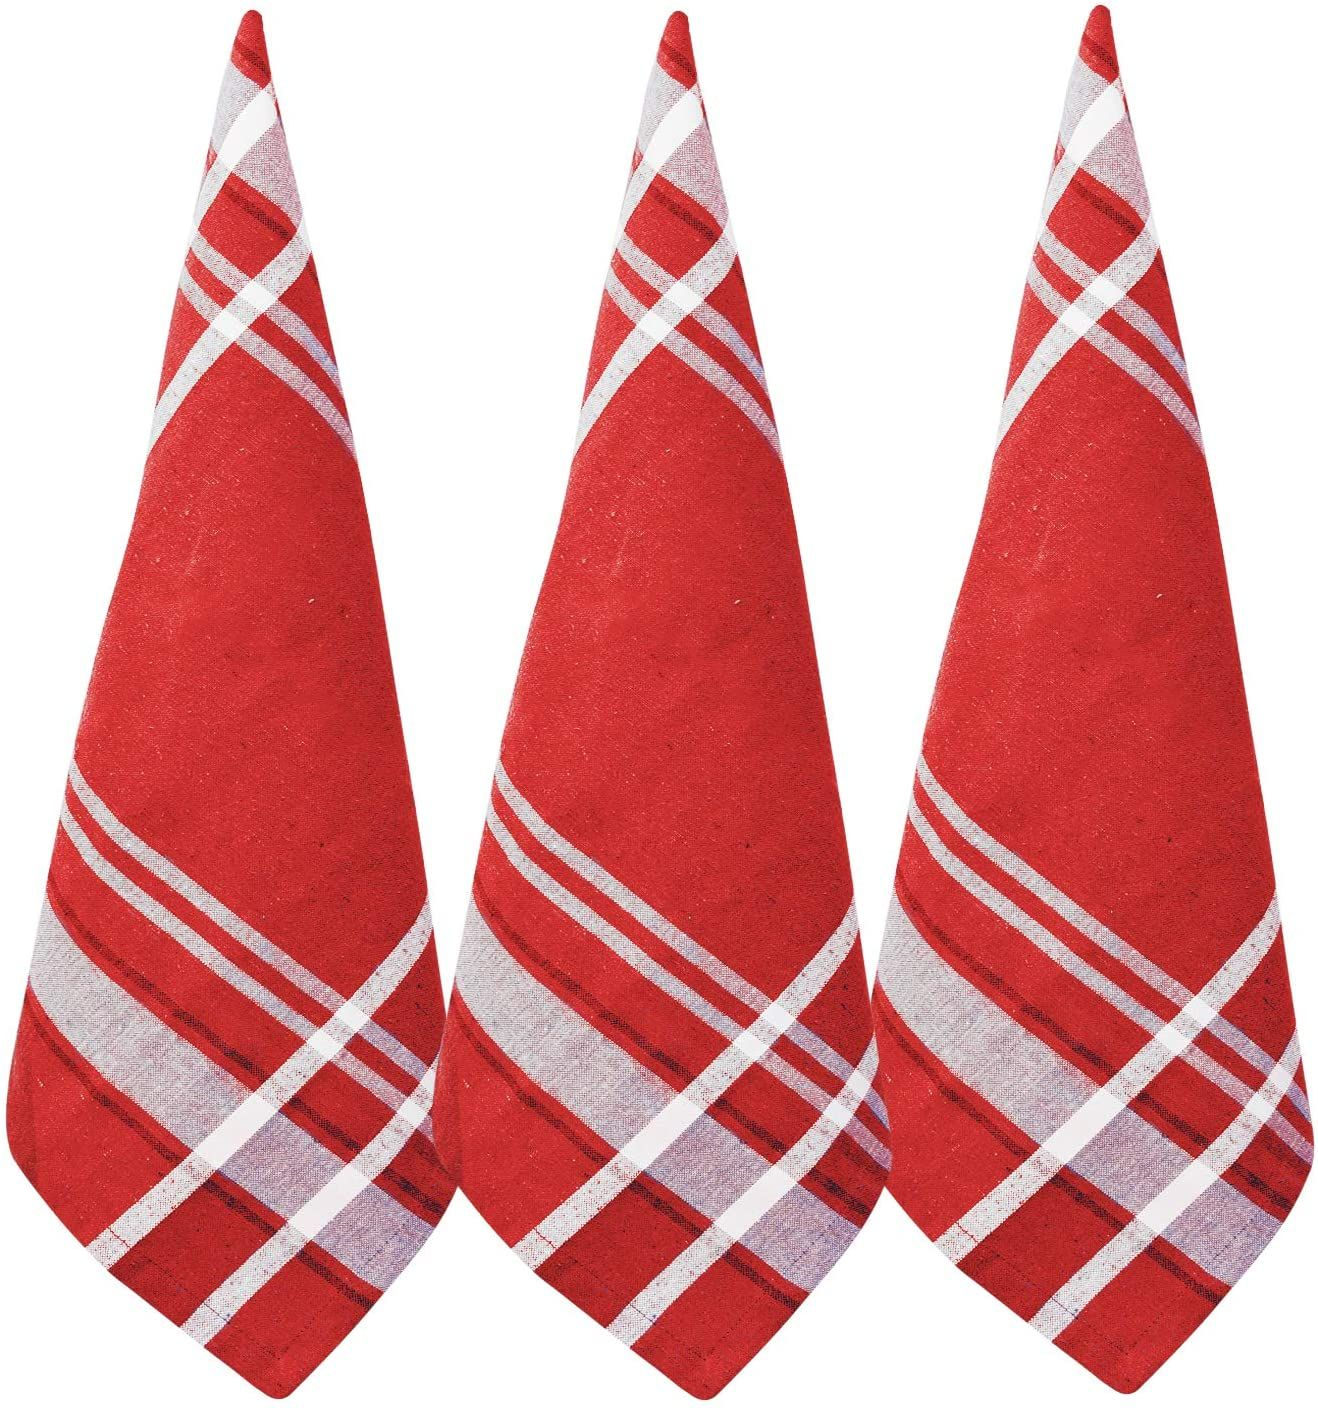 Red Cotton Dish Towels In 2021 Striped Towels Cotton Tea Towels Dish Towels